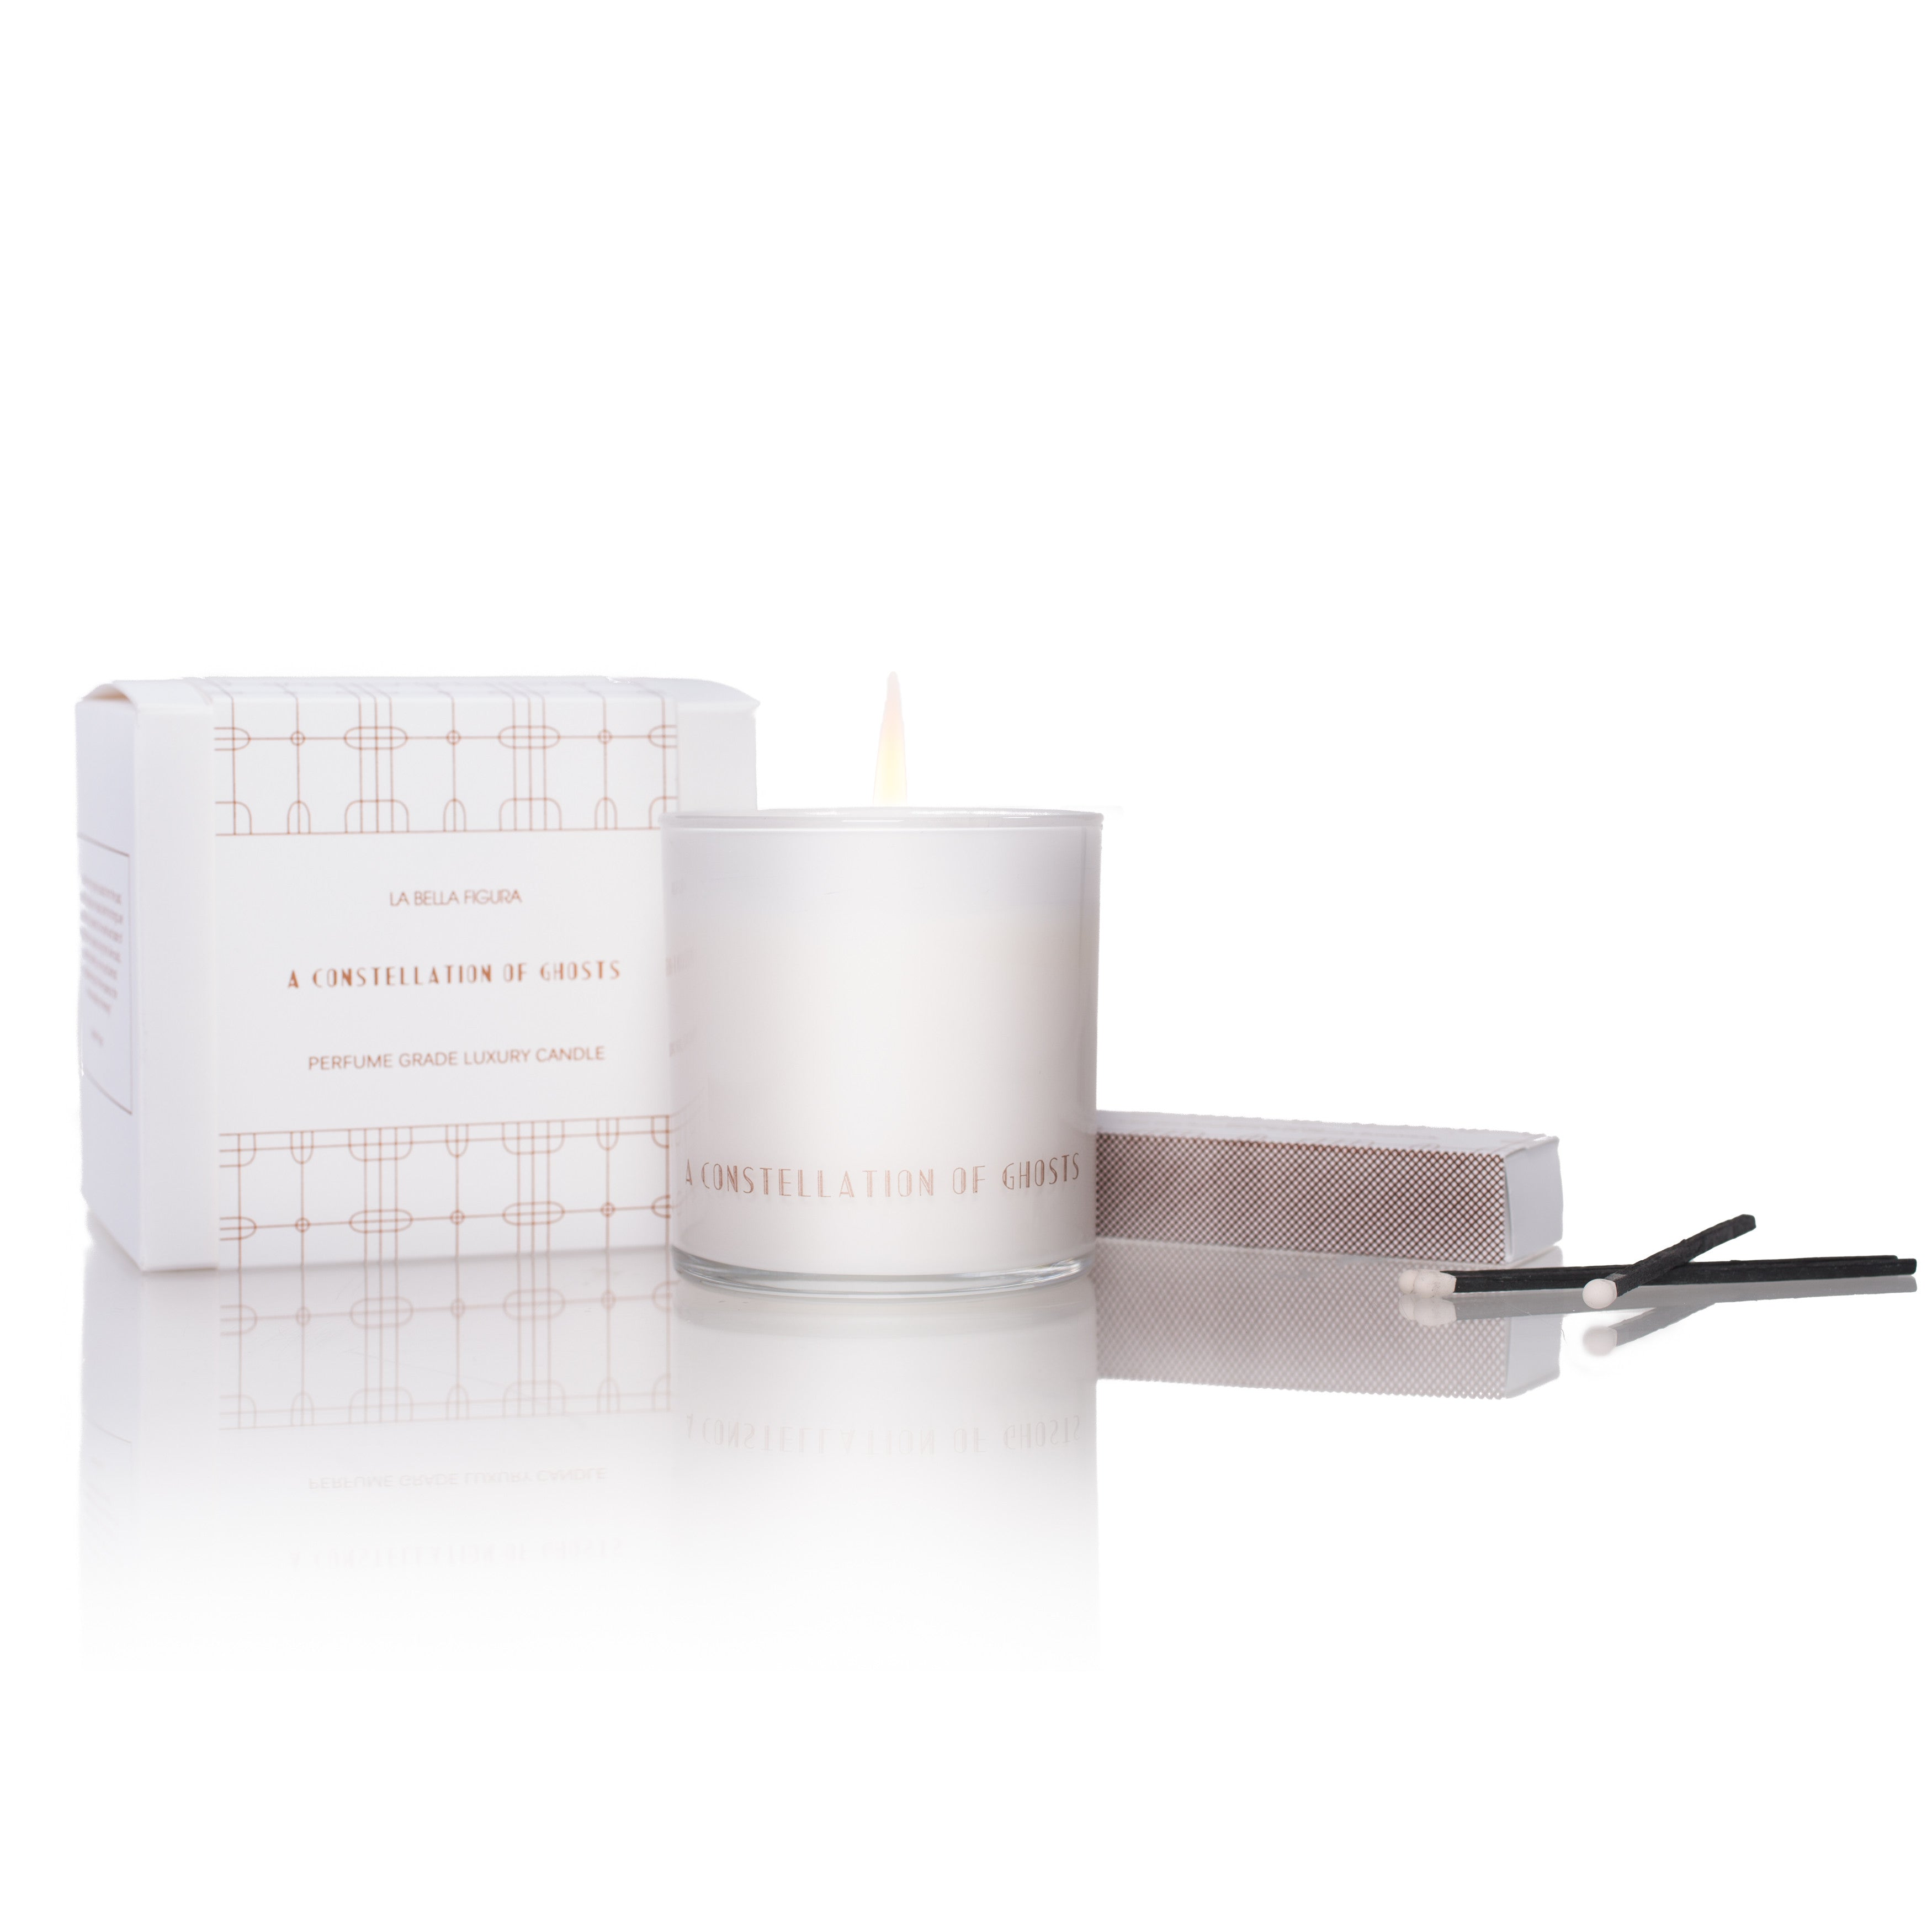 New! A Constellation Of Ghosts-Perfume Grade Luxury Candle